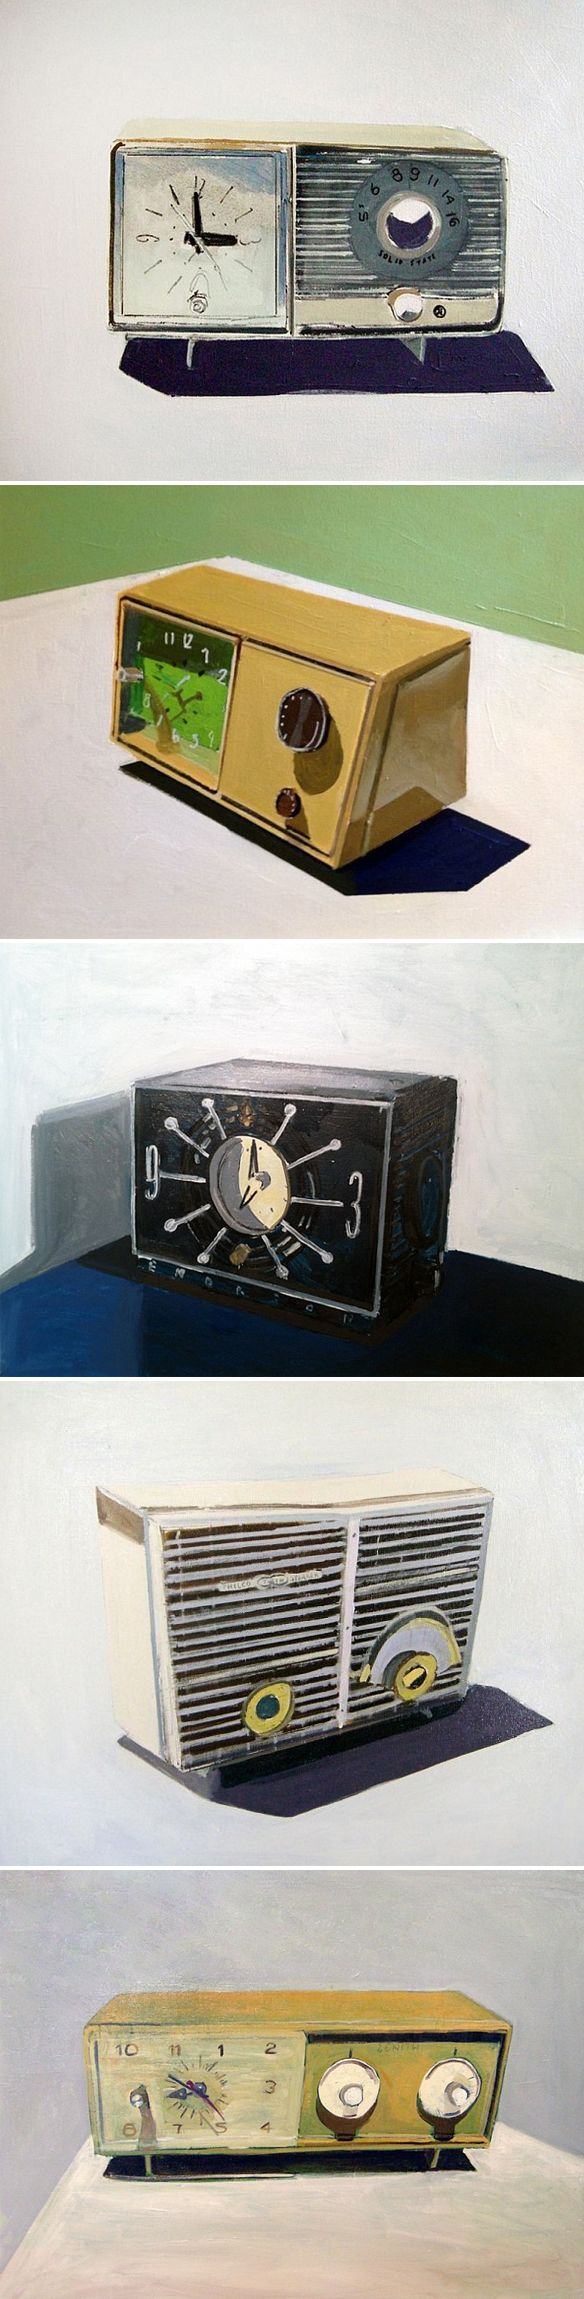 clocks, radios, and clock radios... paintings by jessica brilli